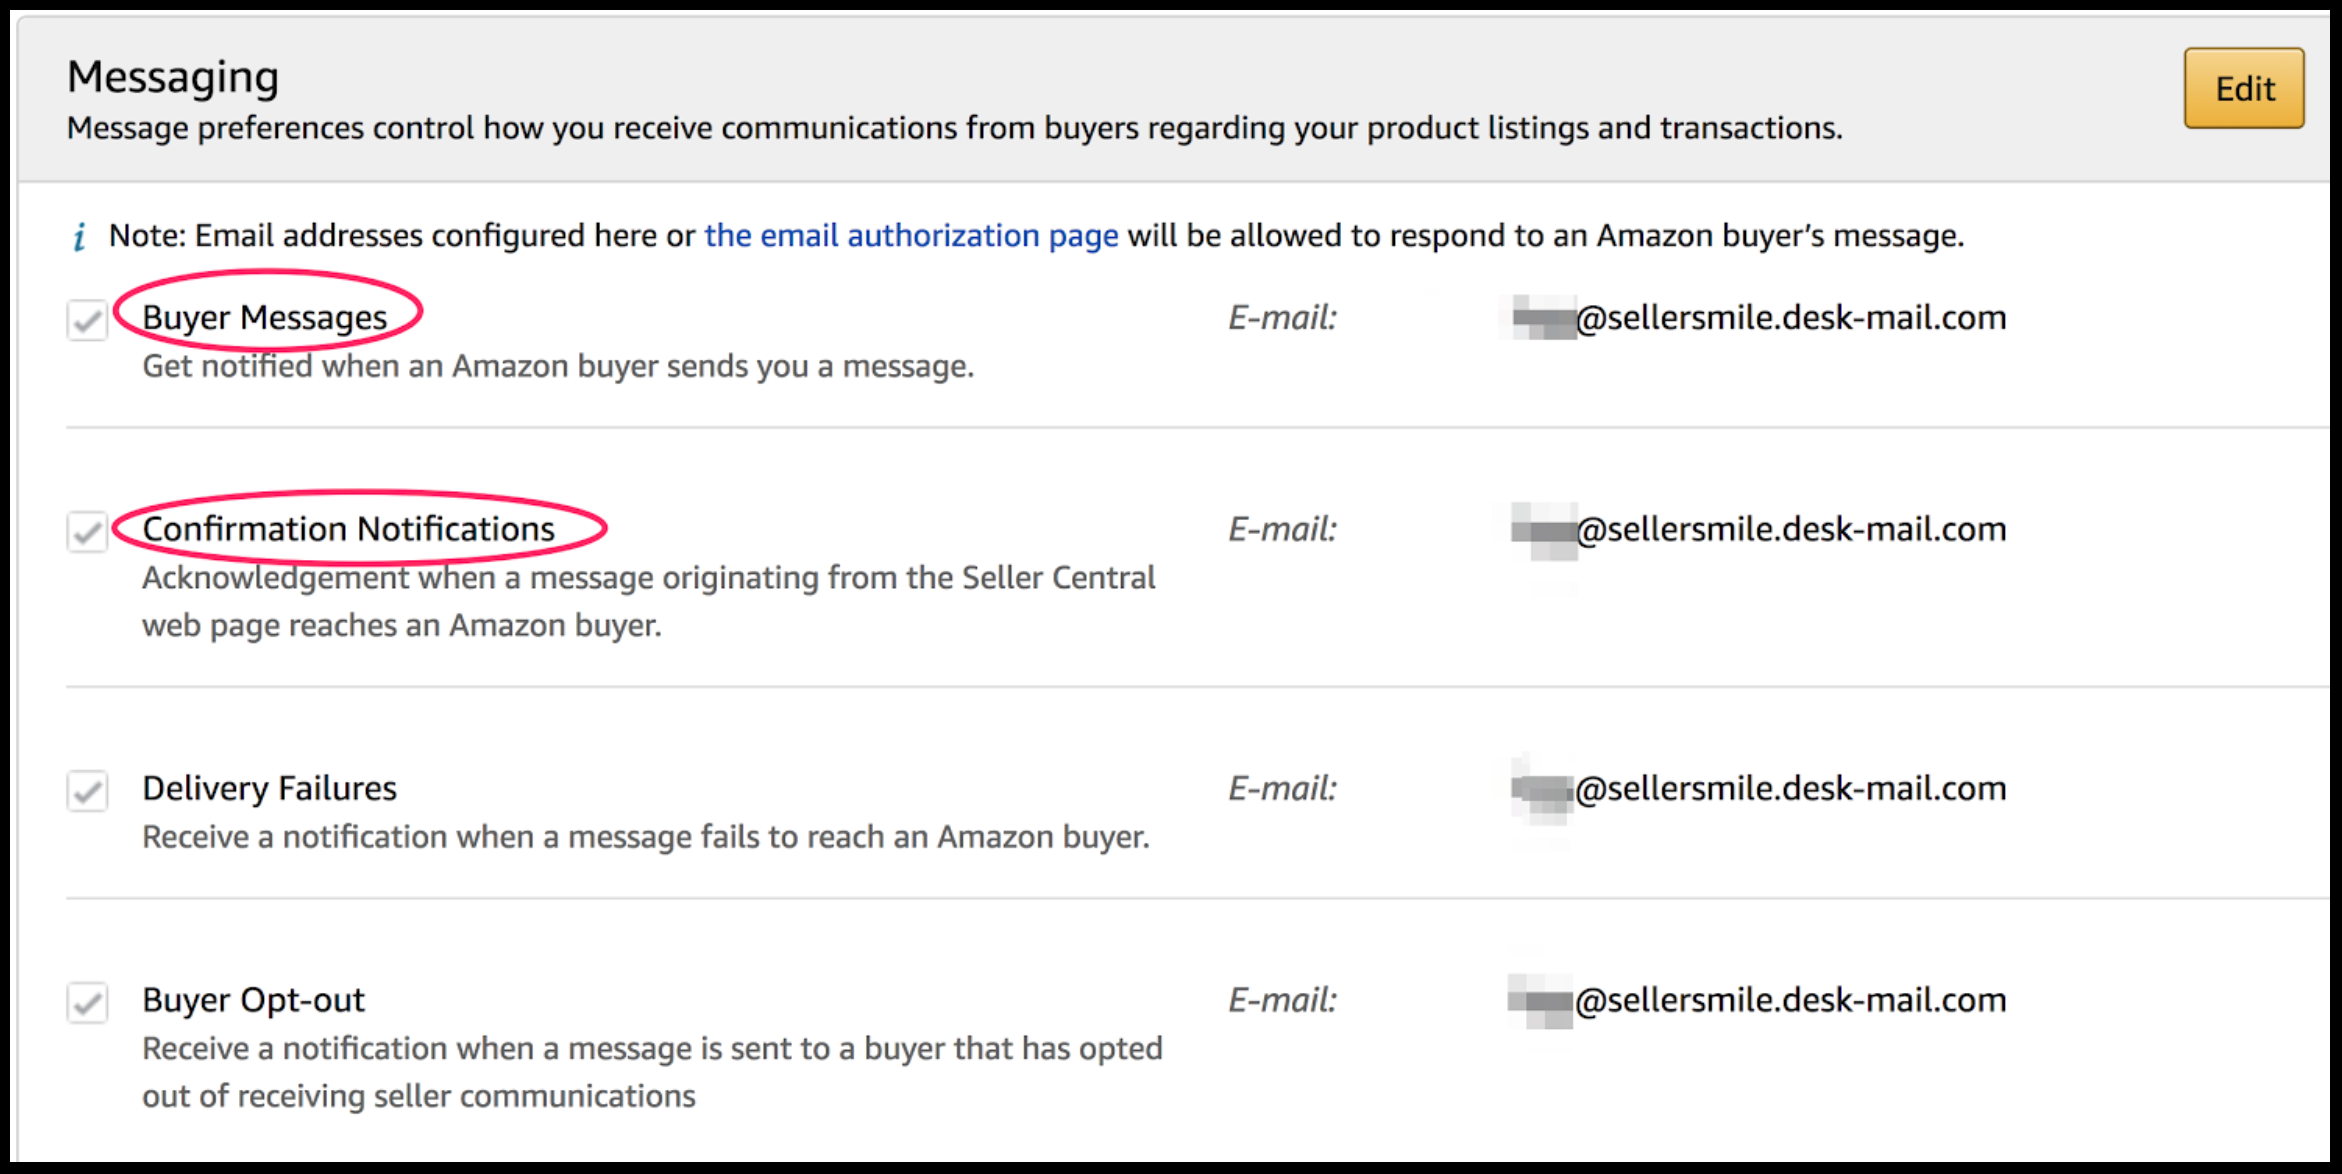 Amazon's Classic Seller Central Buyer-Seller Messaging is